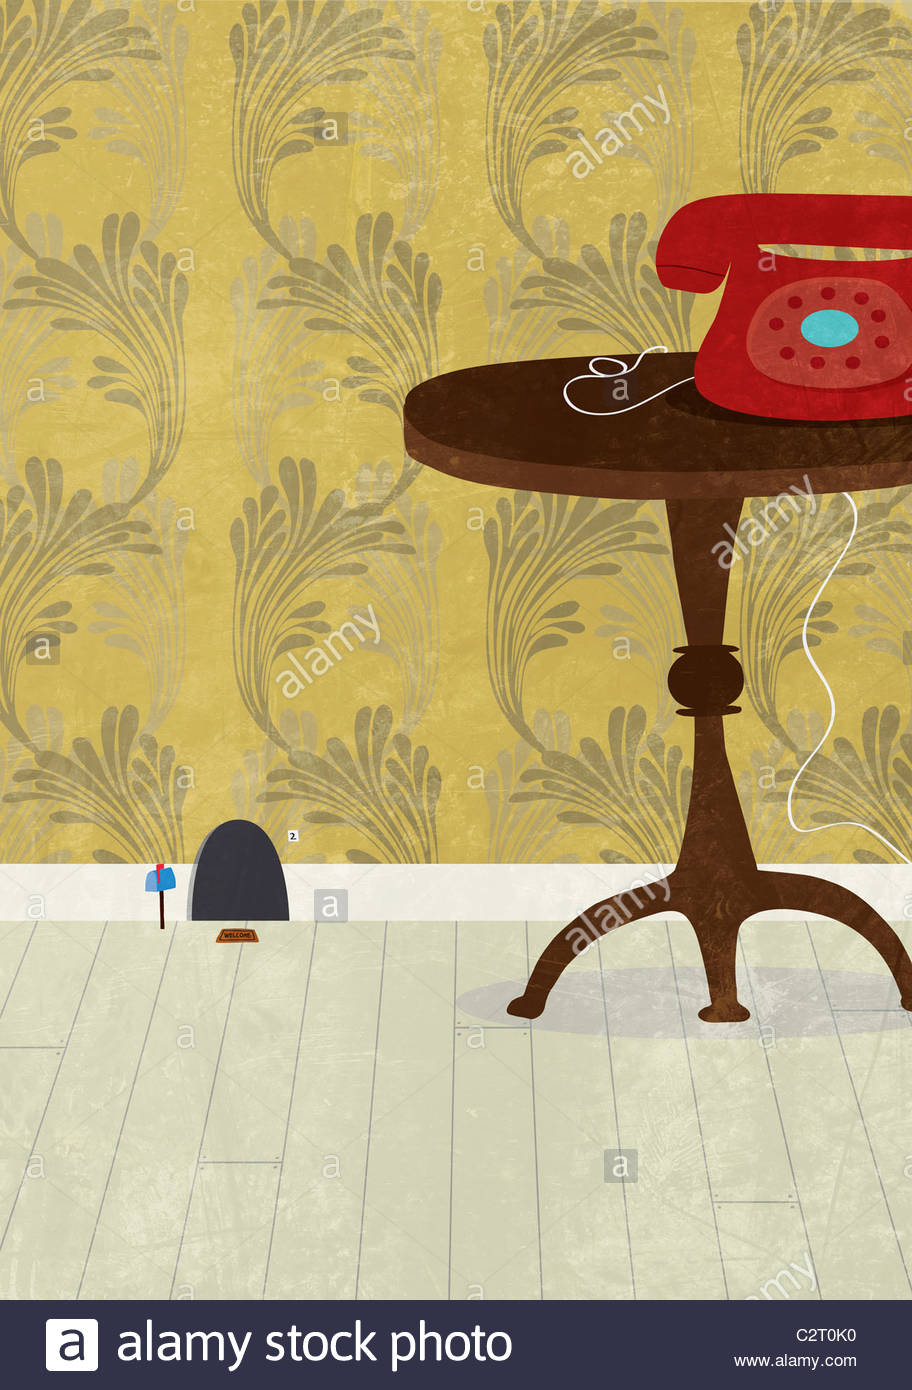 Mouse hole next to table and telephone - Stock Image